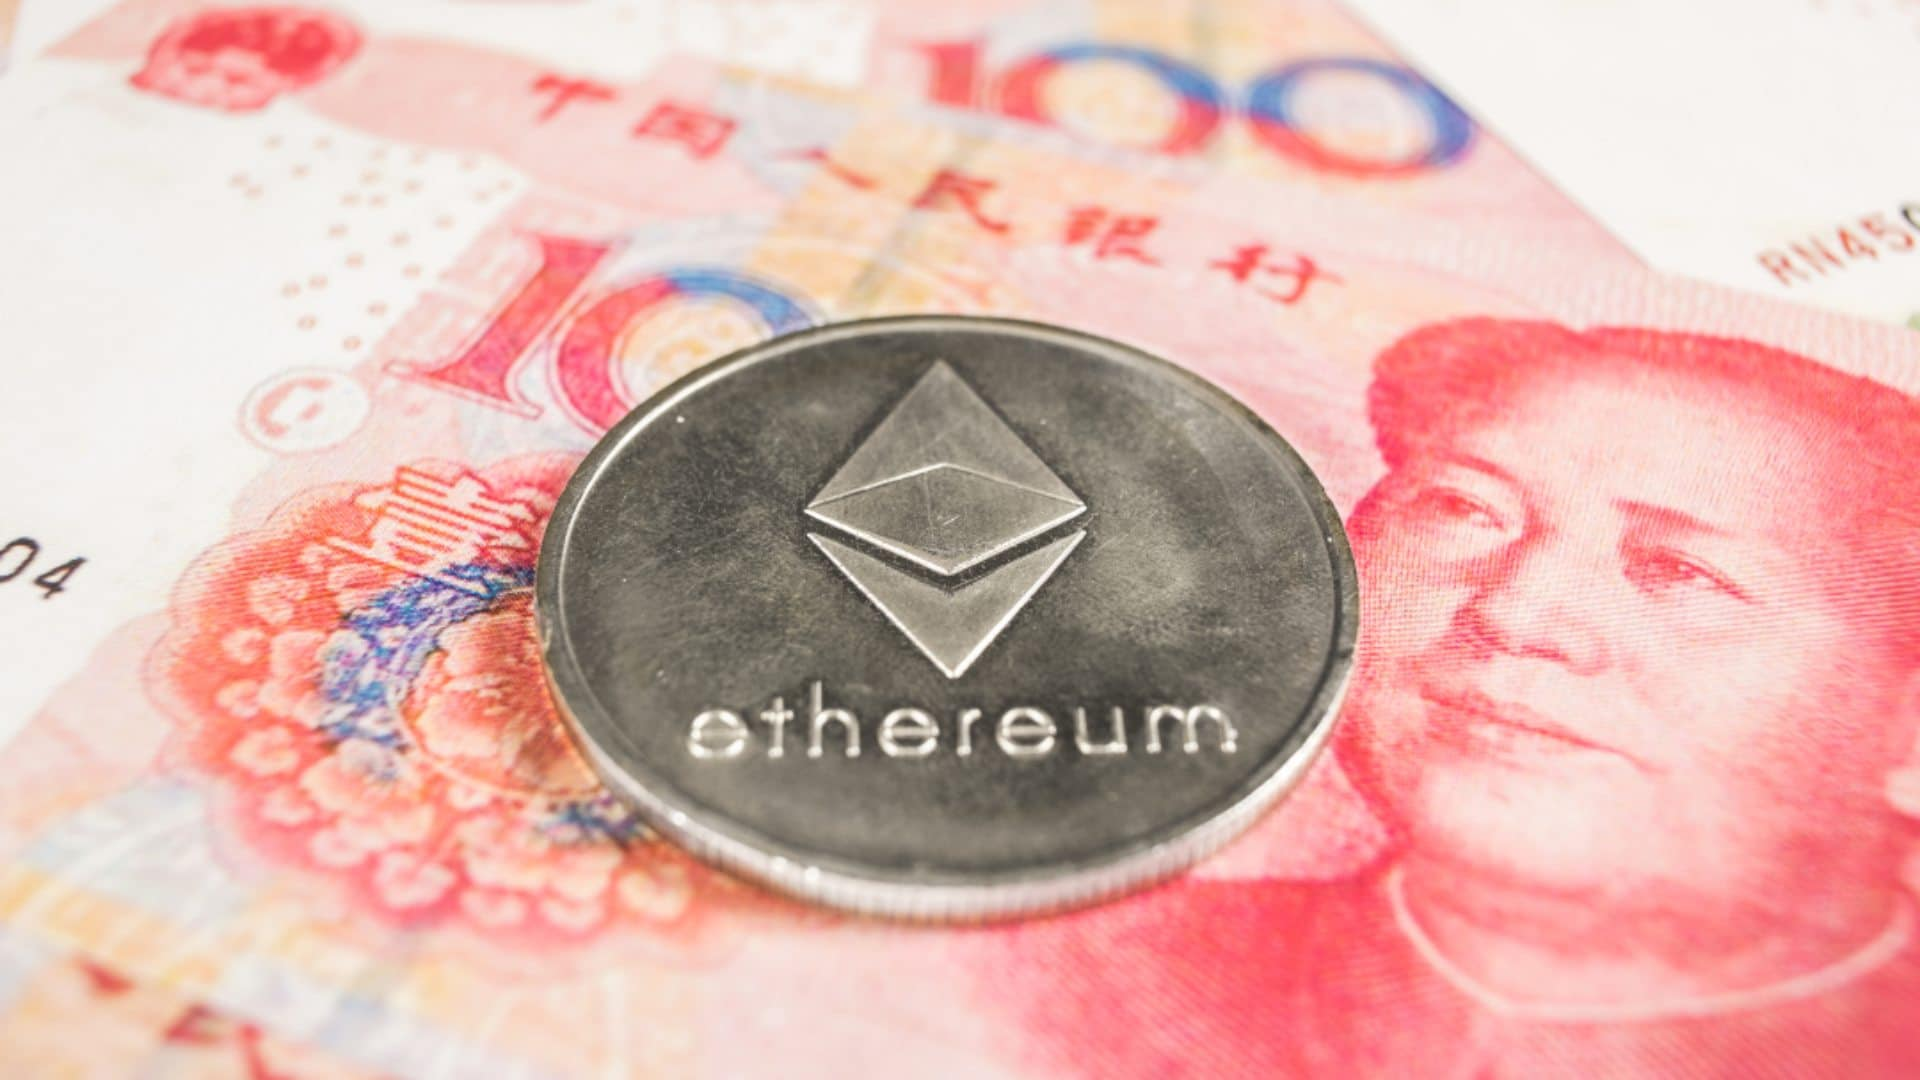 China's Great Firewall blocks one of the most popular Ethereum blockchain websites